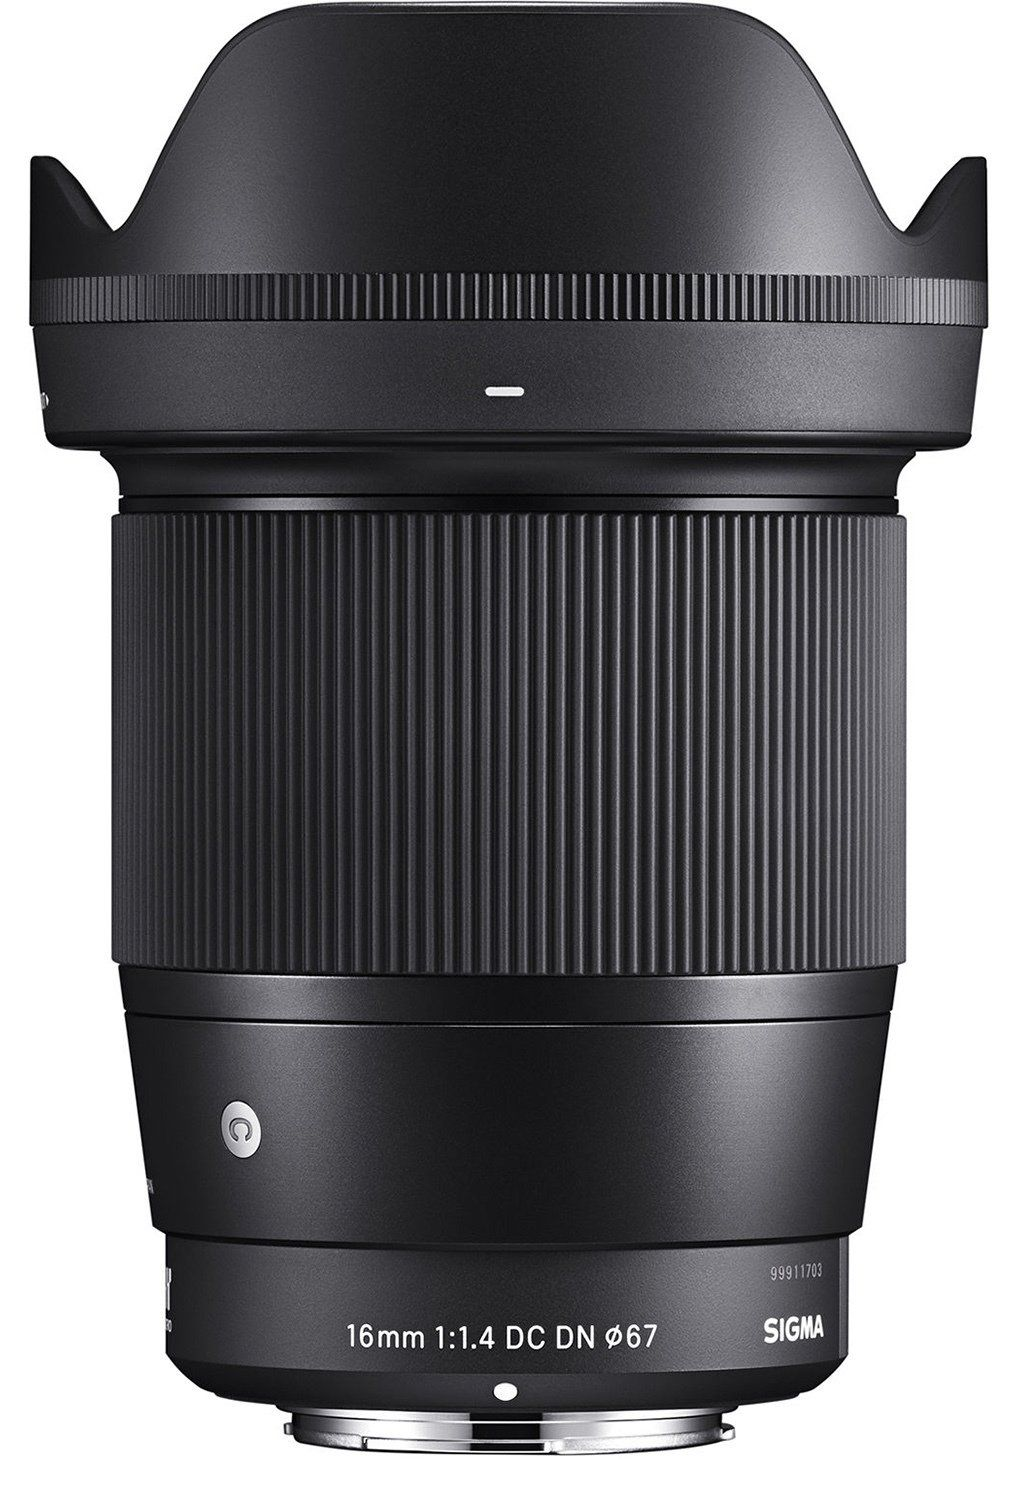 Sigma 16mm F 1 4 Dc Dn Contemporary Lens For Sony E Mount With 64gb Bundle Dc Dn Sigma Mm Instant Camera Sony Lens Sigma